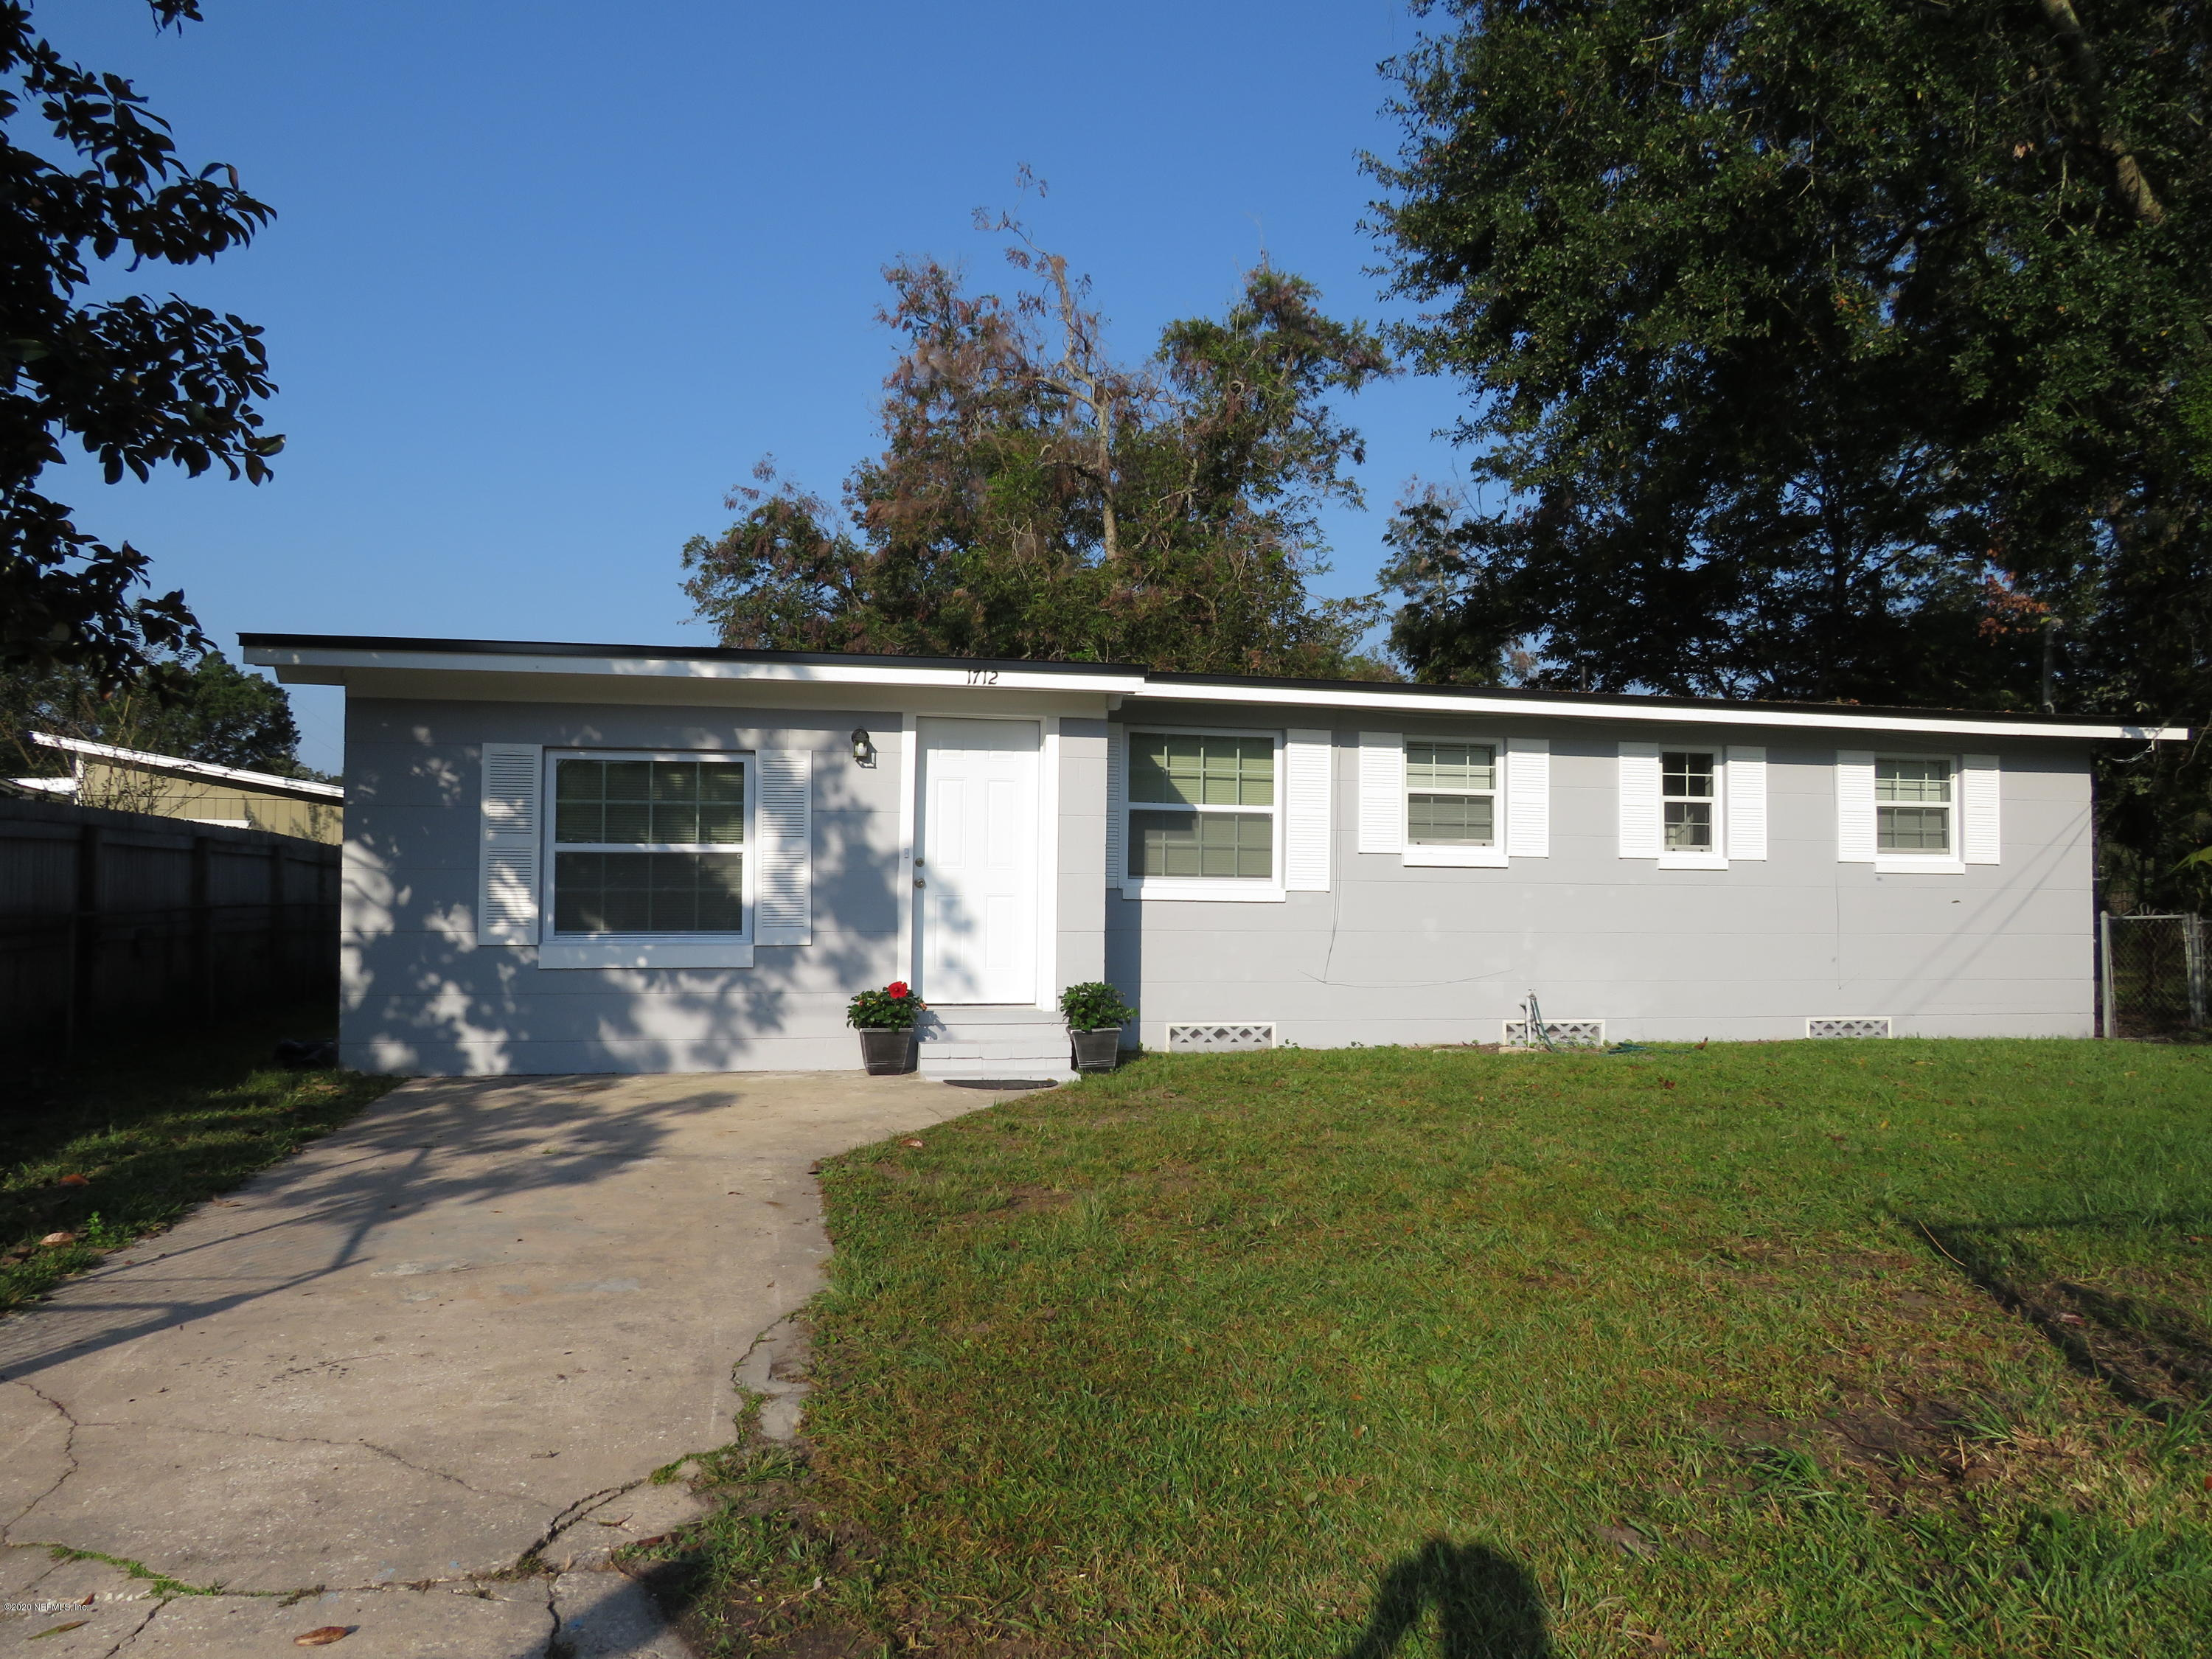 1712 ST CLAIR, JACKSONVILLE, FLORIDA 32254, 3 Bedrooms Bedrooms, ,2 BathroomsBathrooms,Residential,For sale,ST CLAIR,1078238